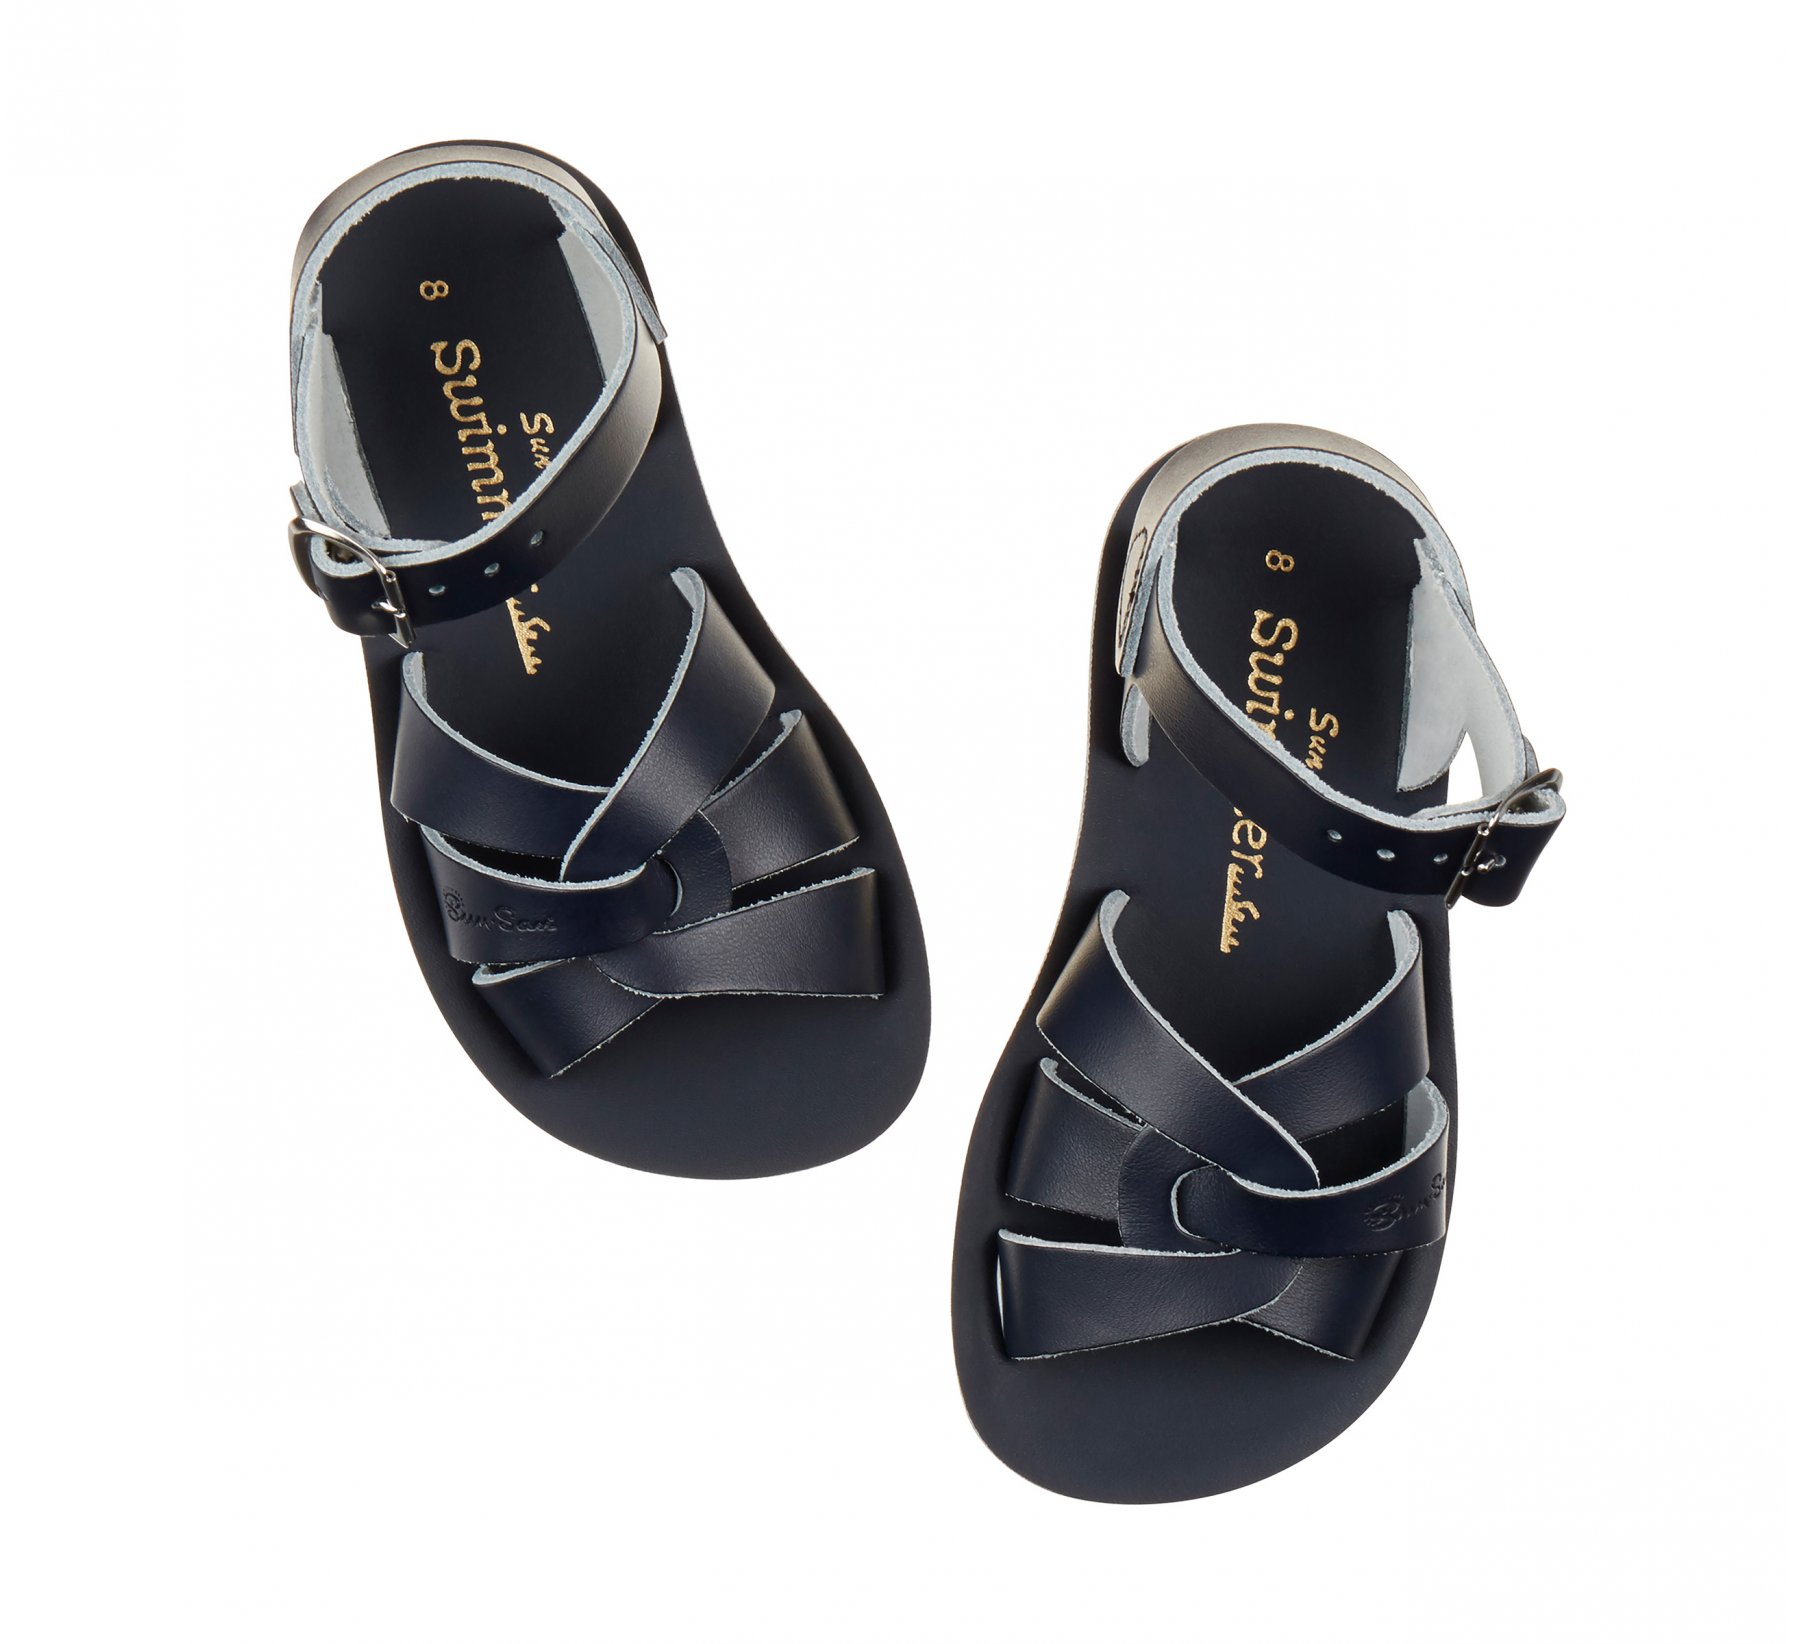 Swimmer Biru Kelasi  - Salt Water Sandals